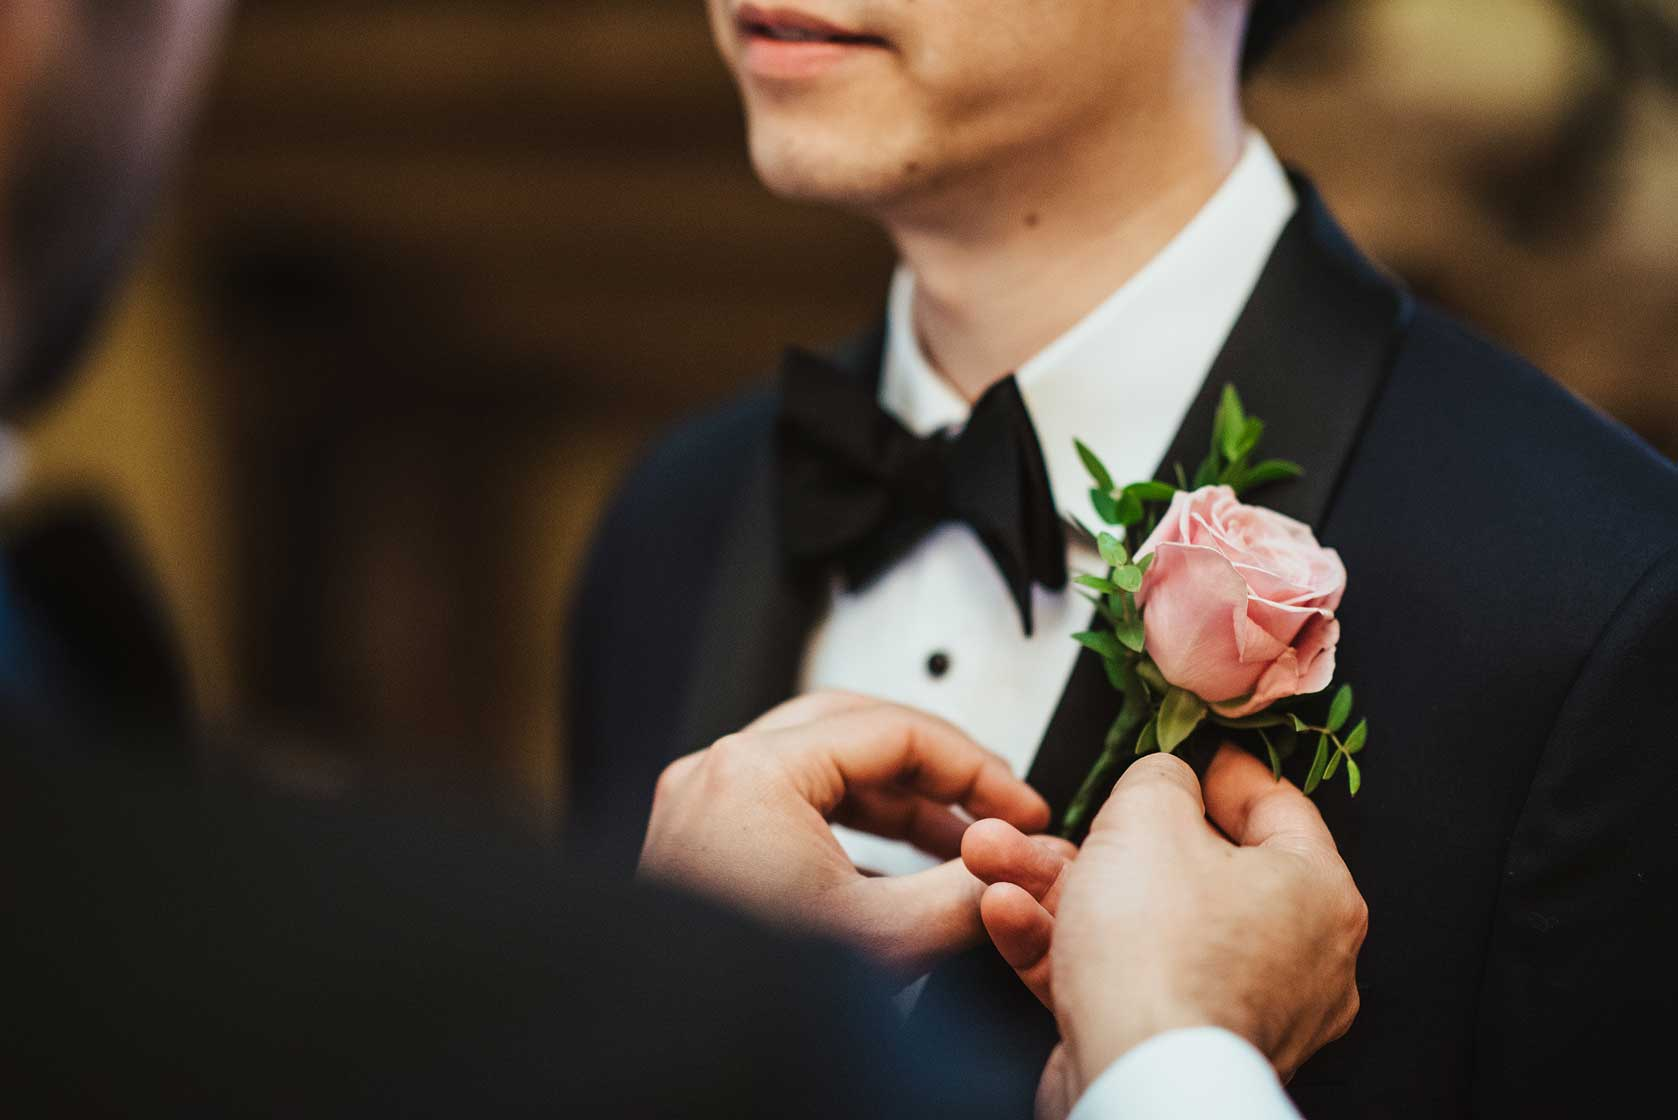 Groom at Stoke Park has wedding buttonhole fitted